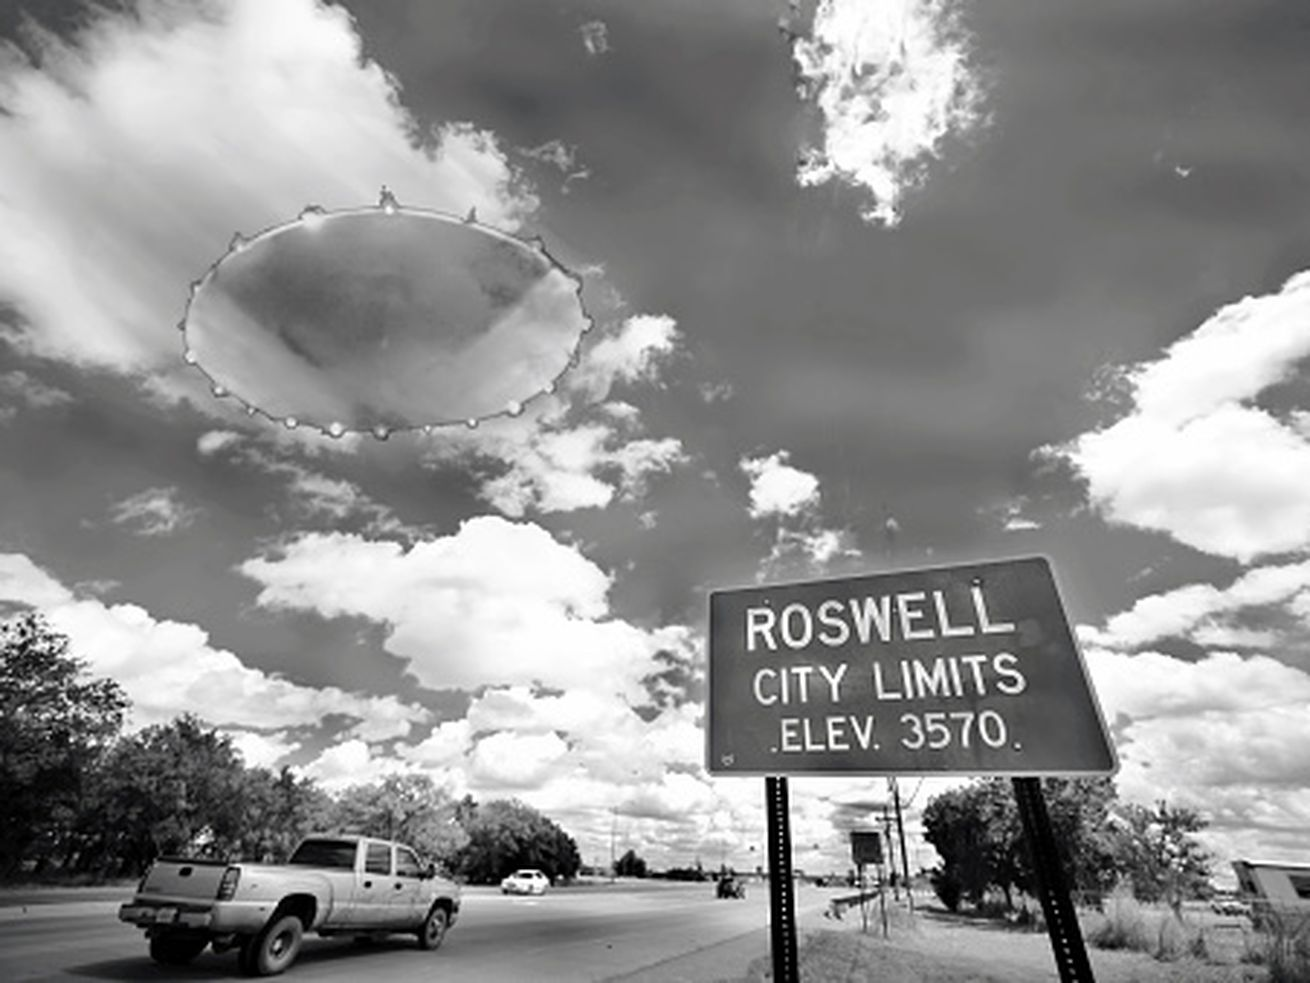 Image of a UFO in the town of Roswell, New Mexico.